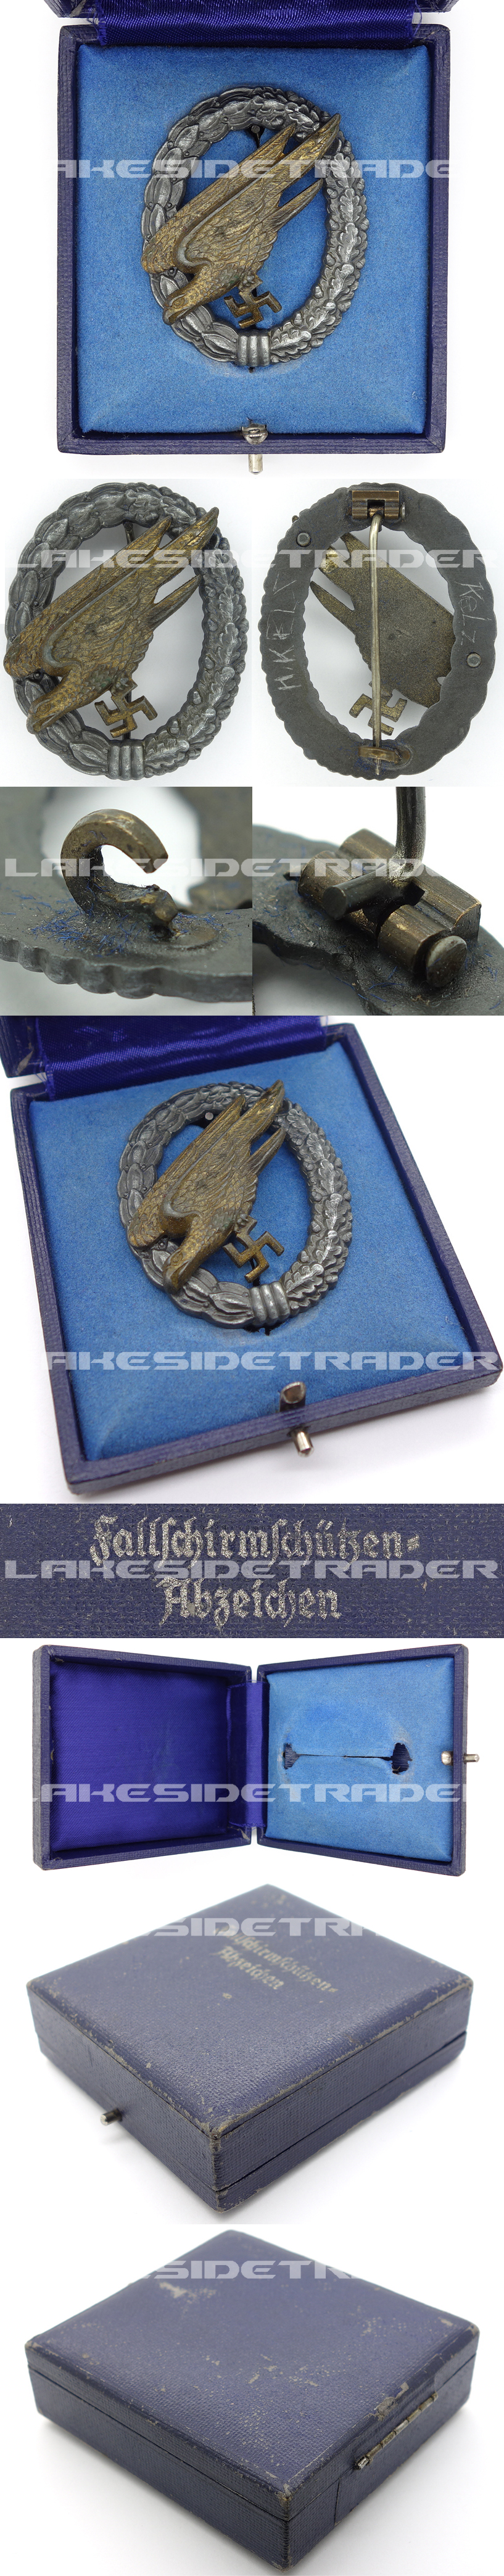 Personalized - Cased Luftwaffe Paratrooper Badge by FLL